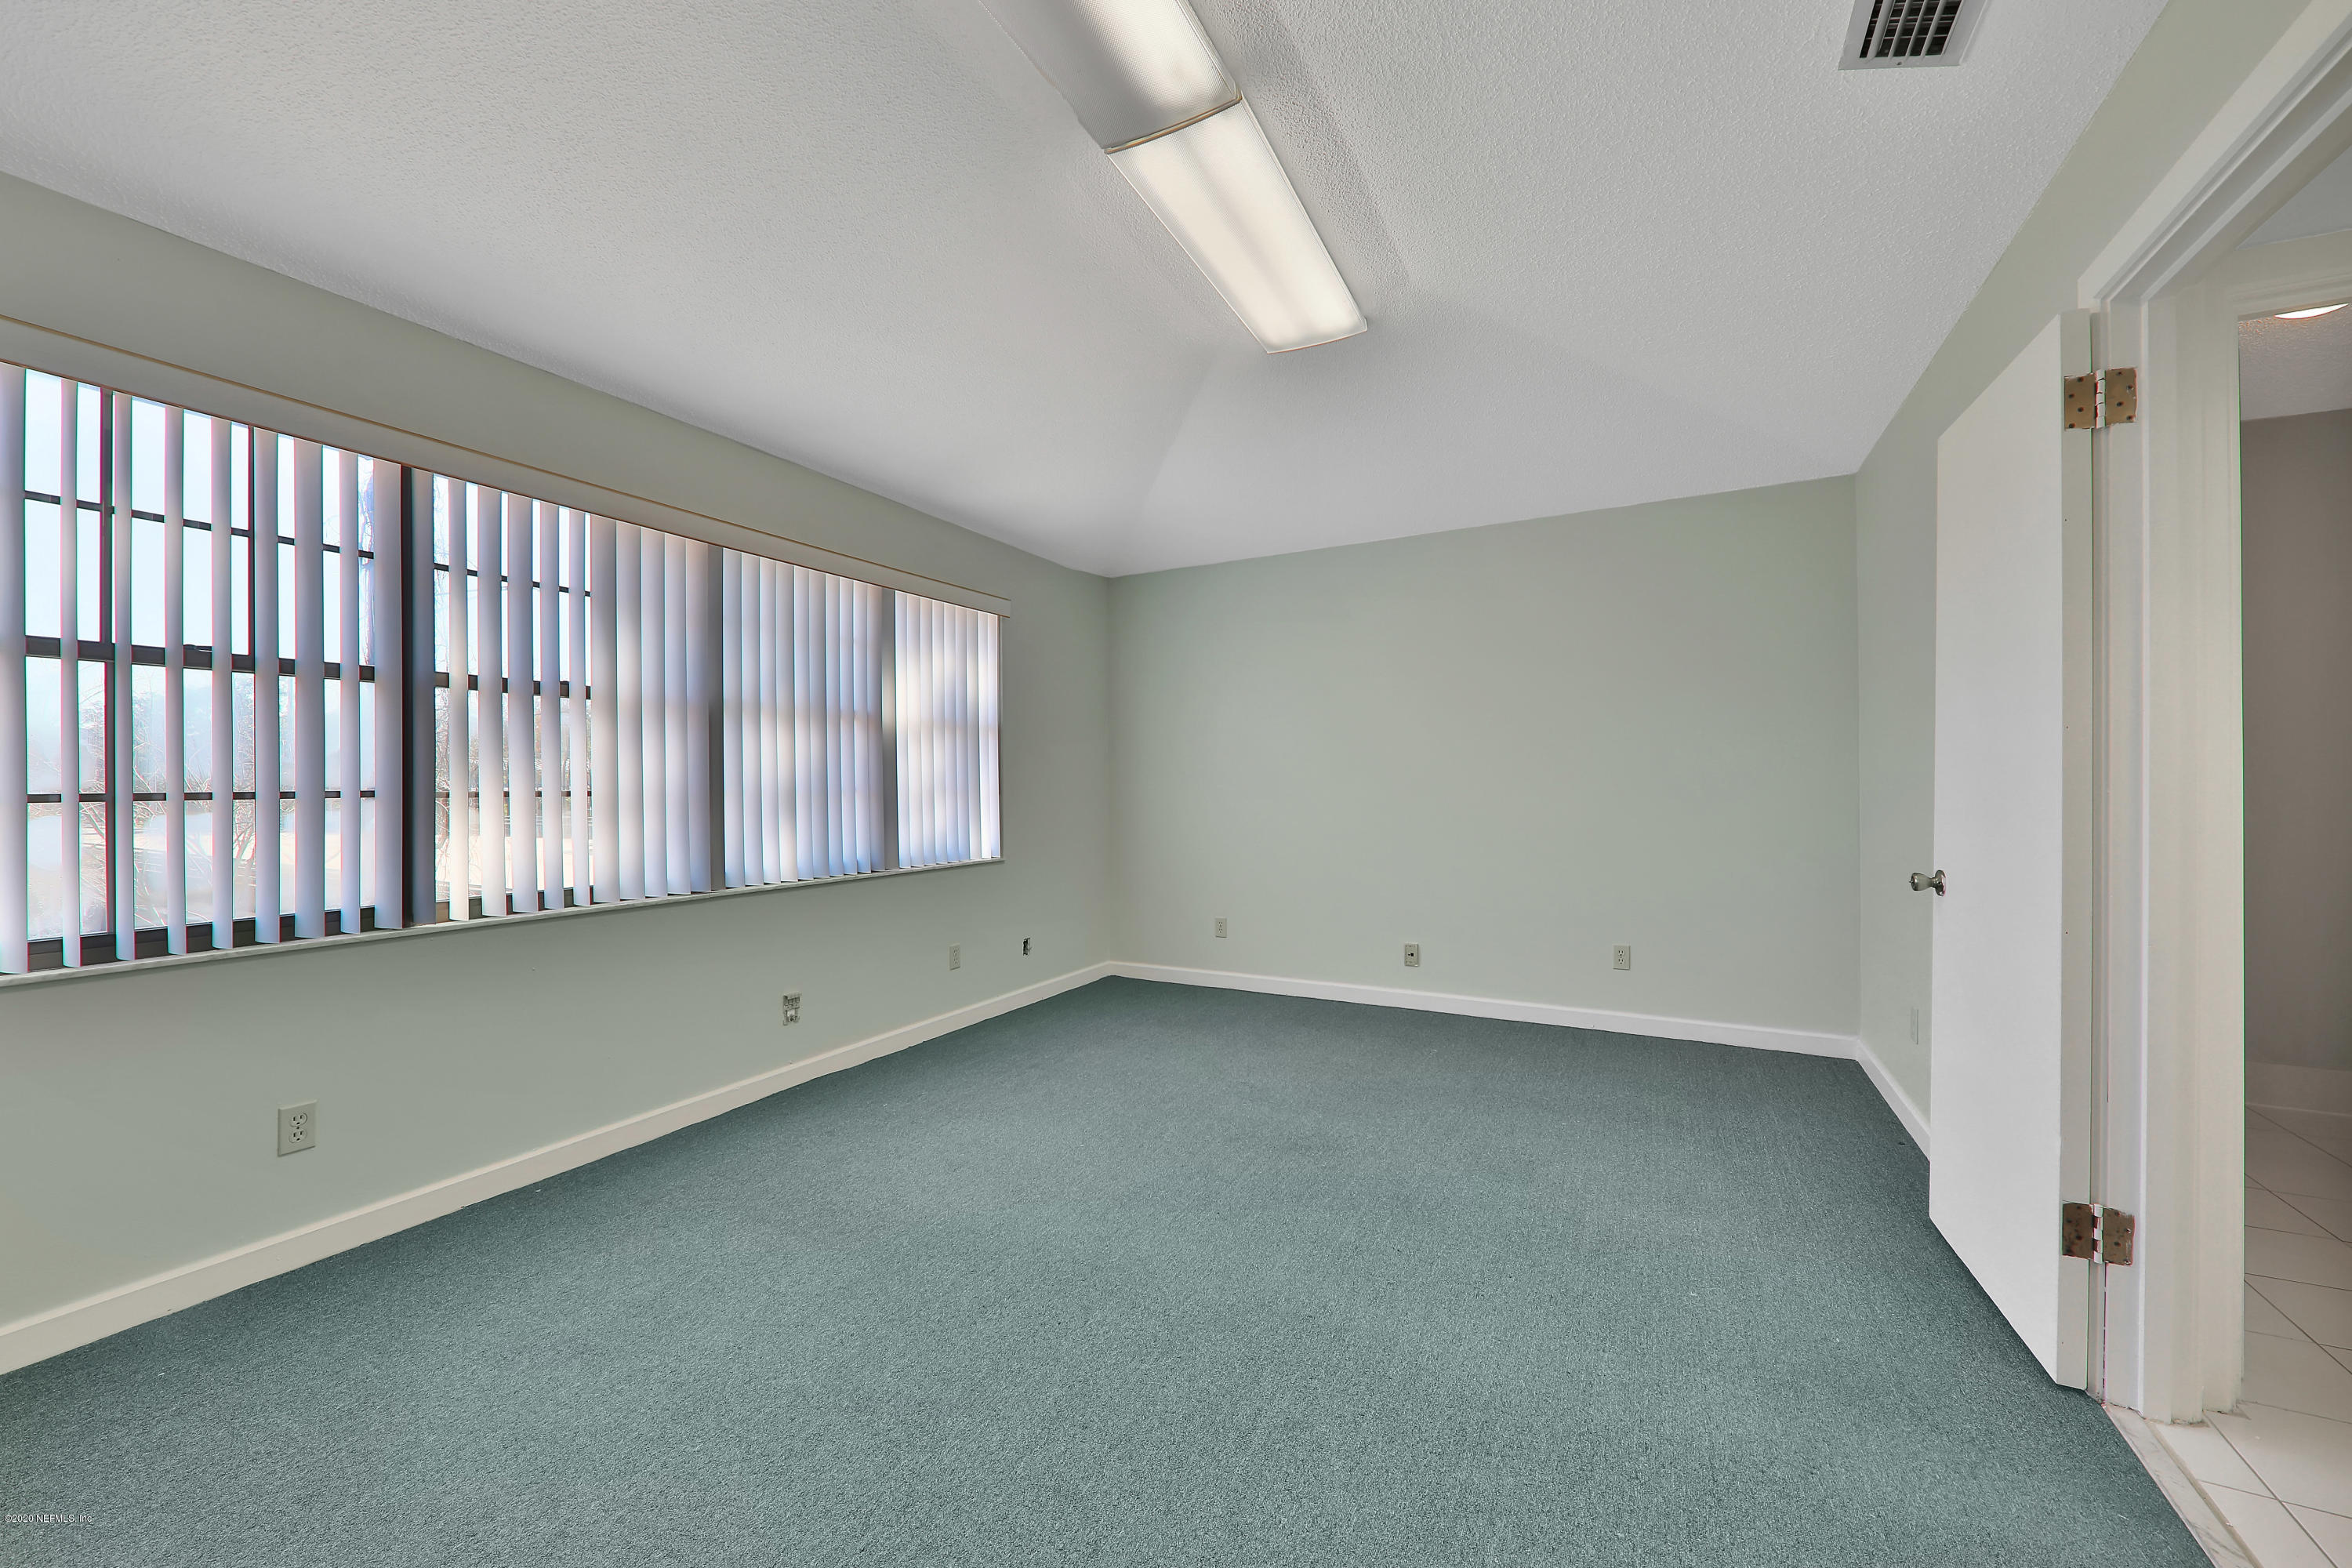 Image 6 of 35 For 4043 Baymeadows Rd